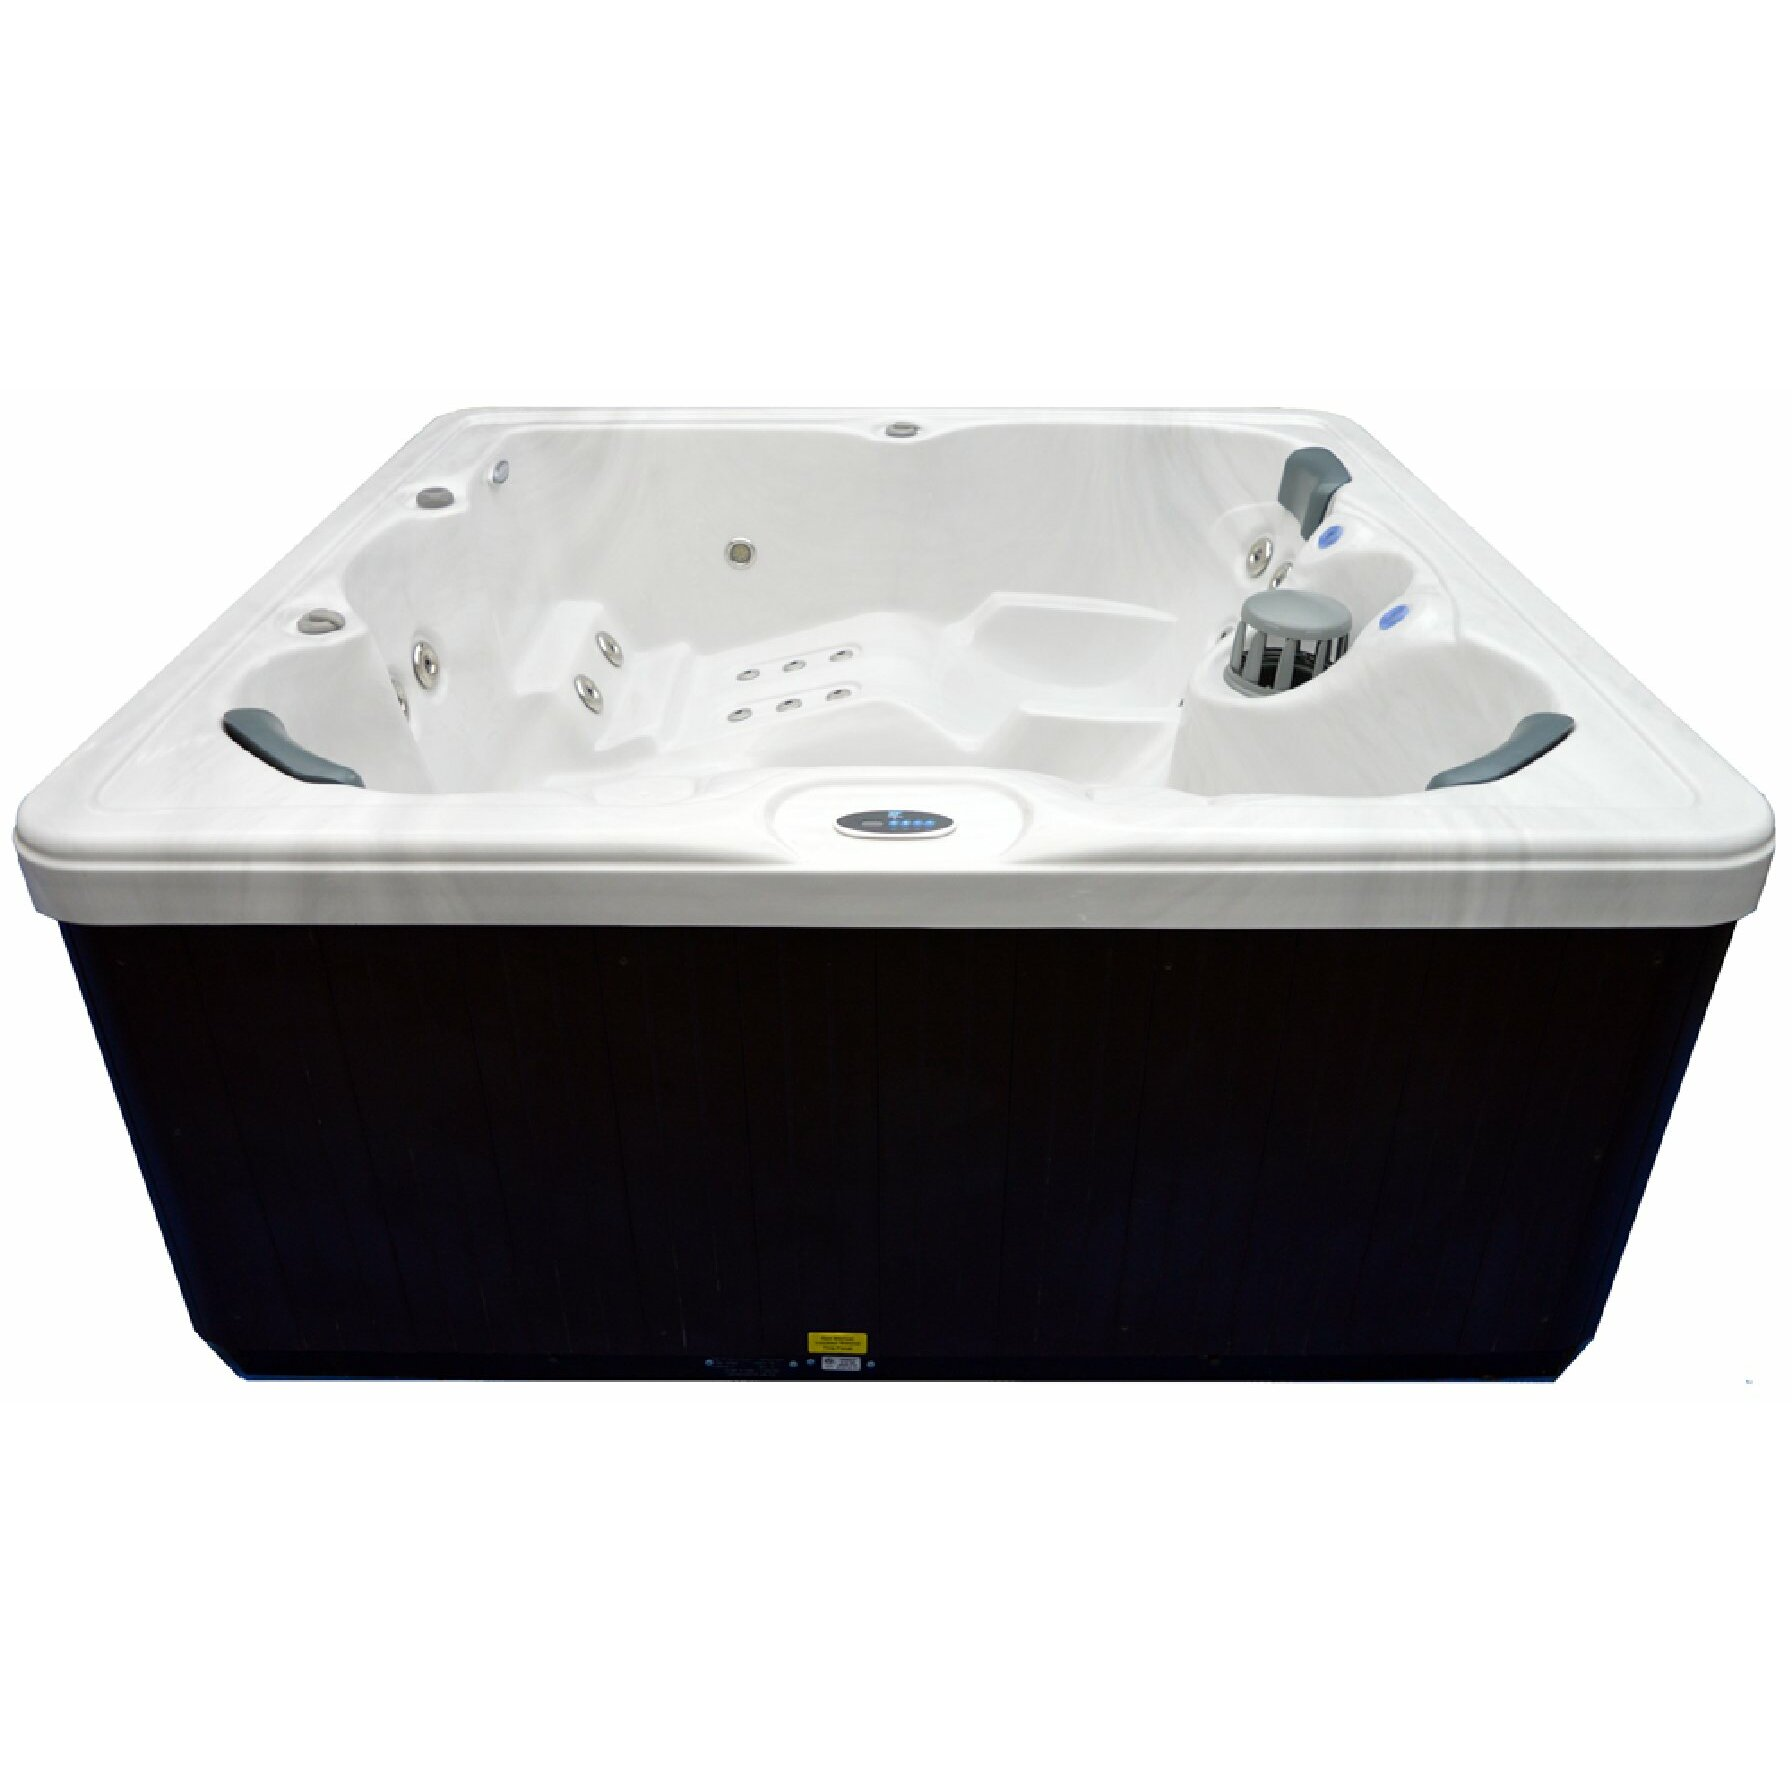 Home And Garden Spas 5 Person 51 Jet Spa With Stainless